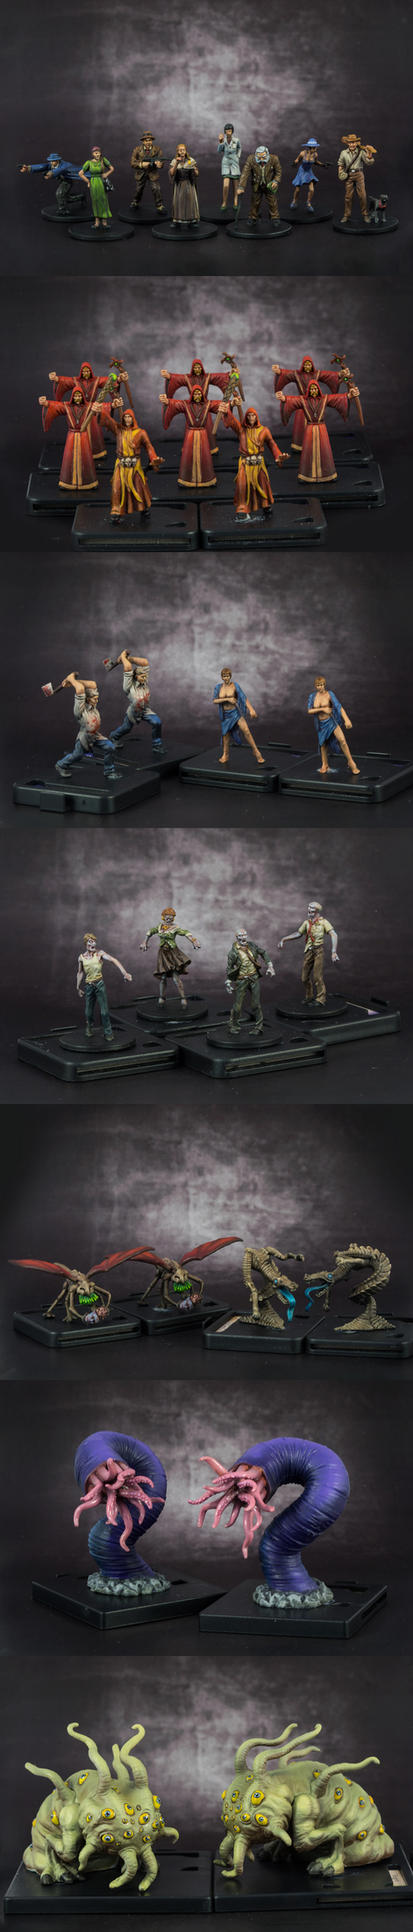 Mansions of Madness (Miniatures) by mafaka